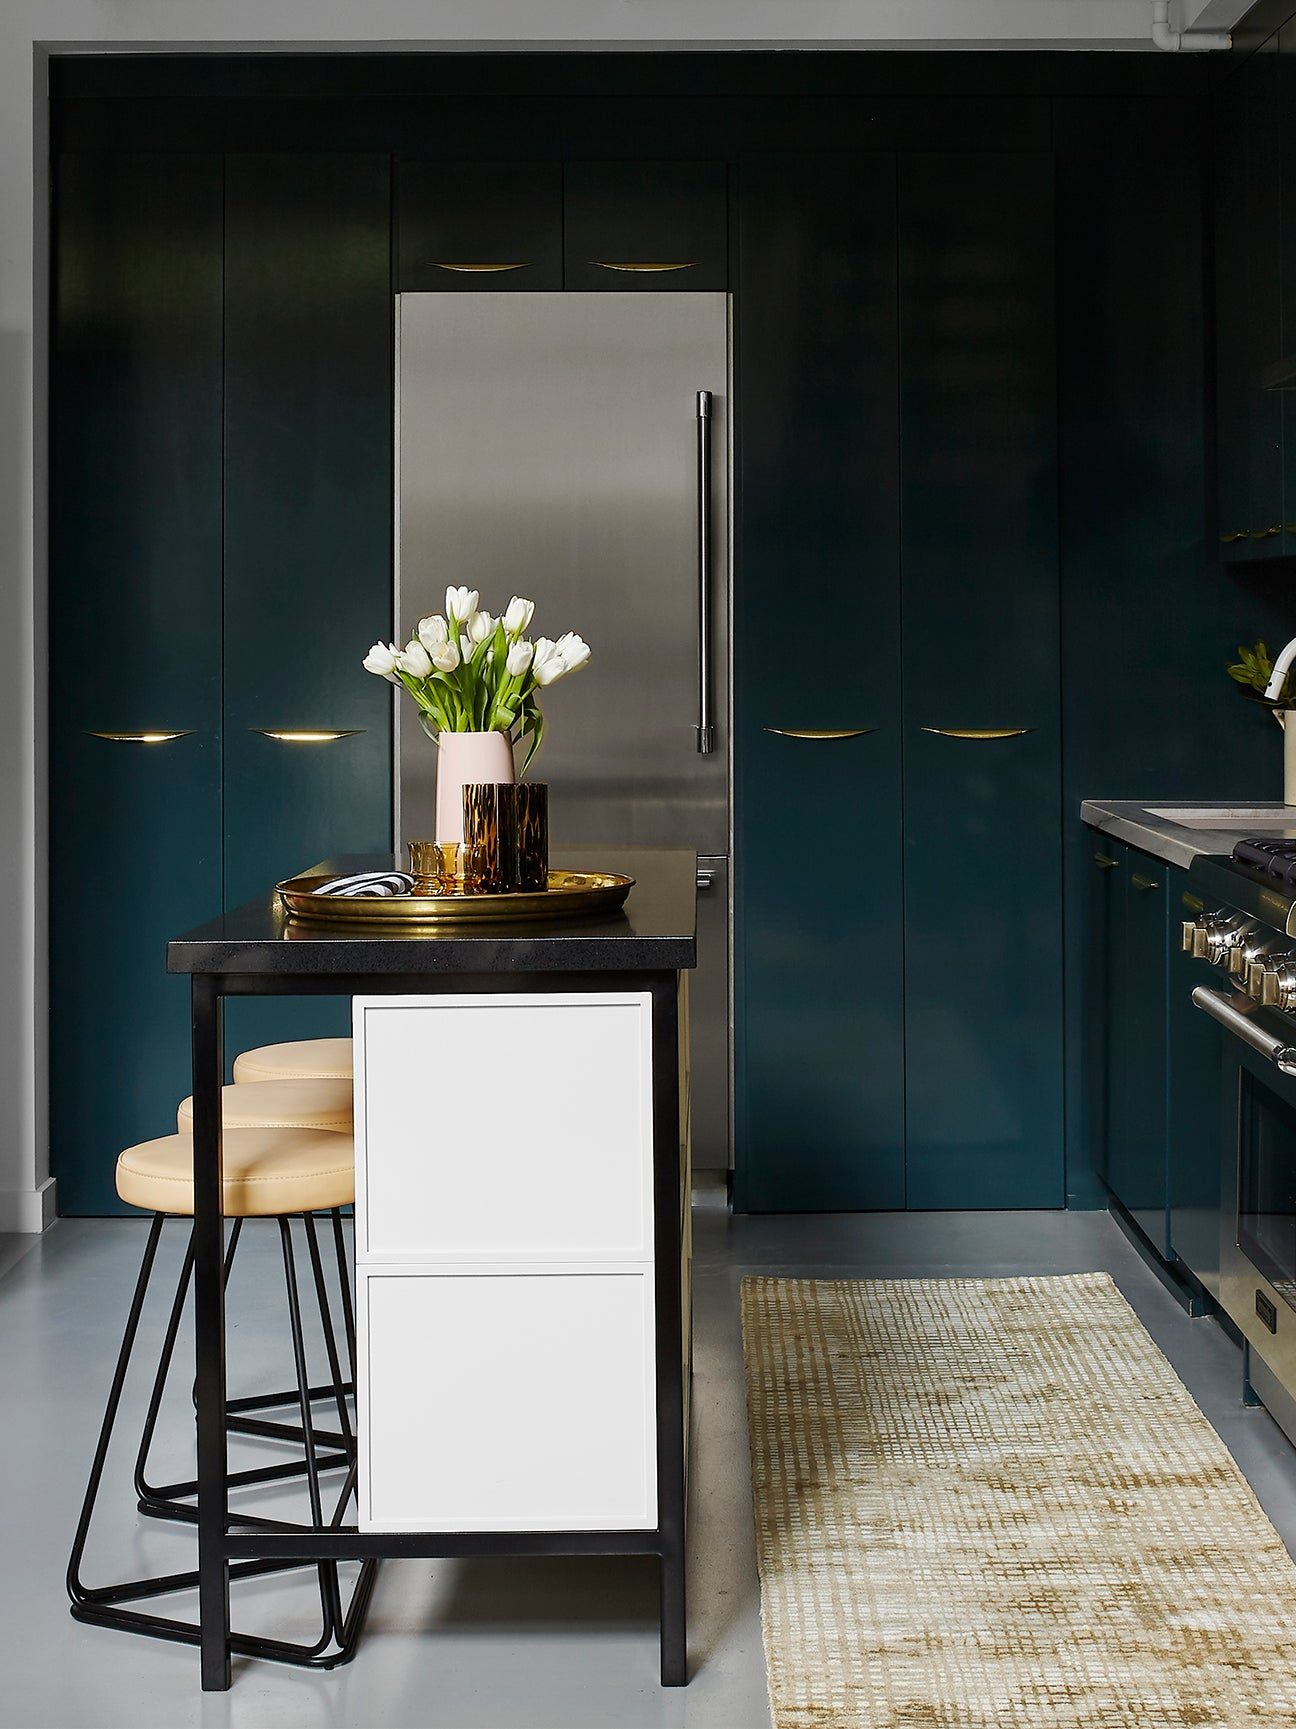 Utility Cabinets Are the Next Big Kitchen Storage Trend to Know